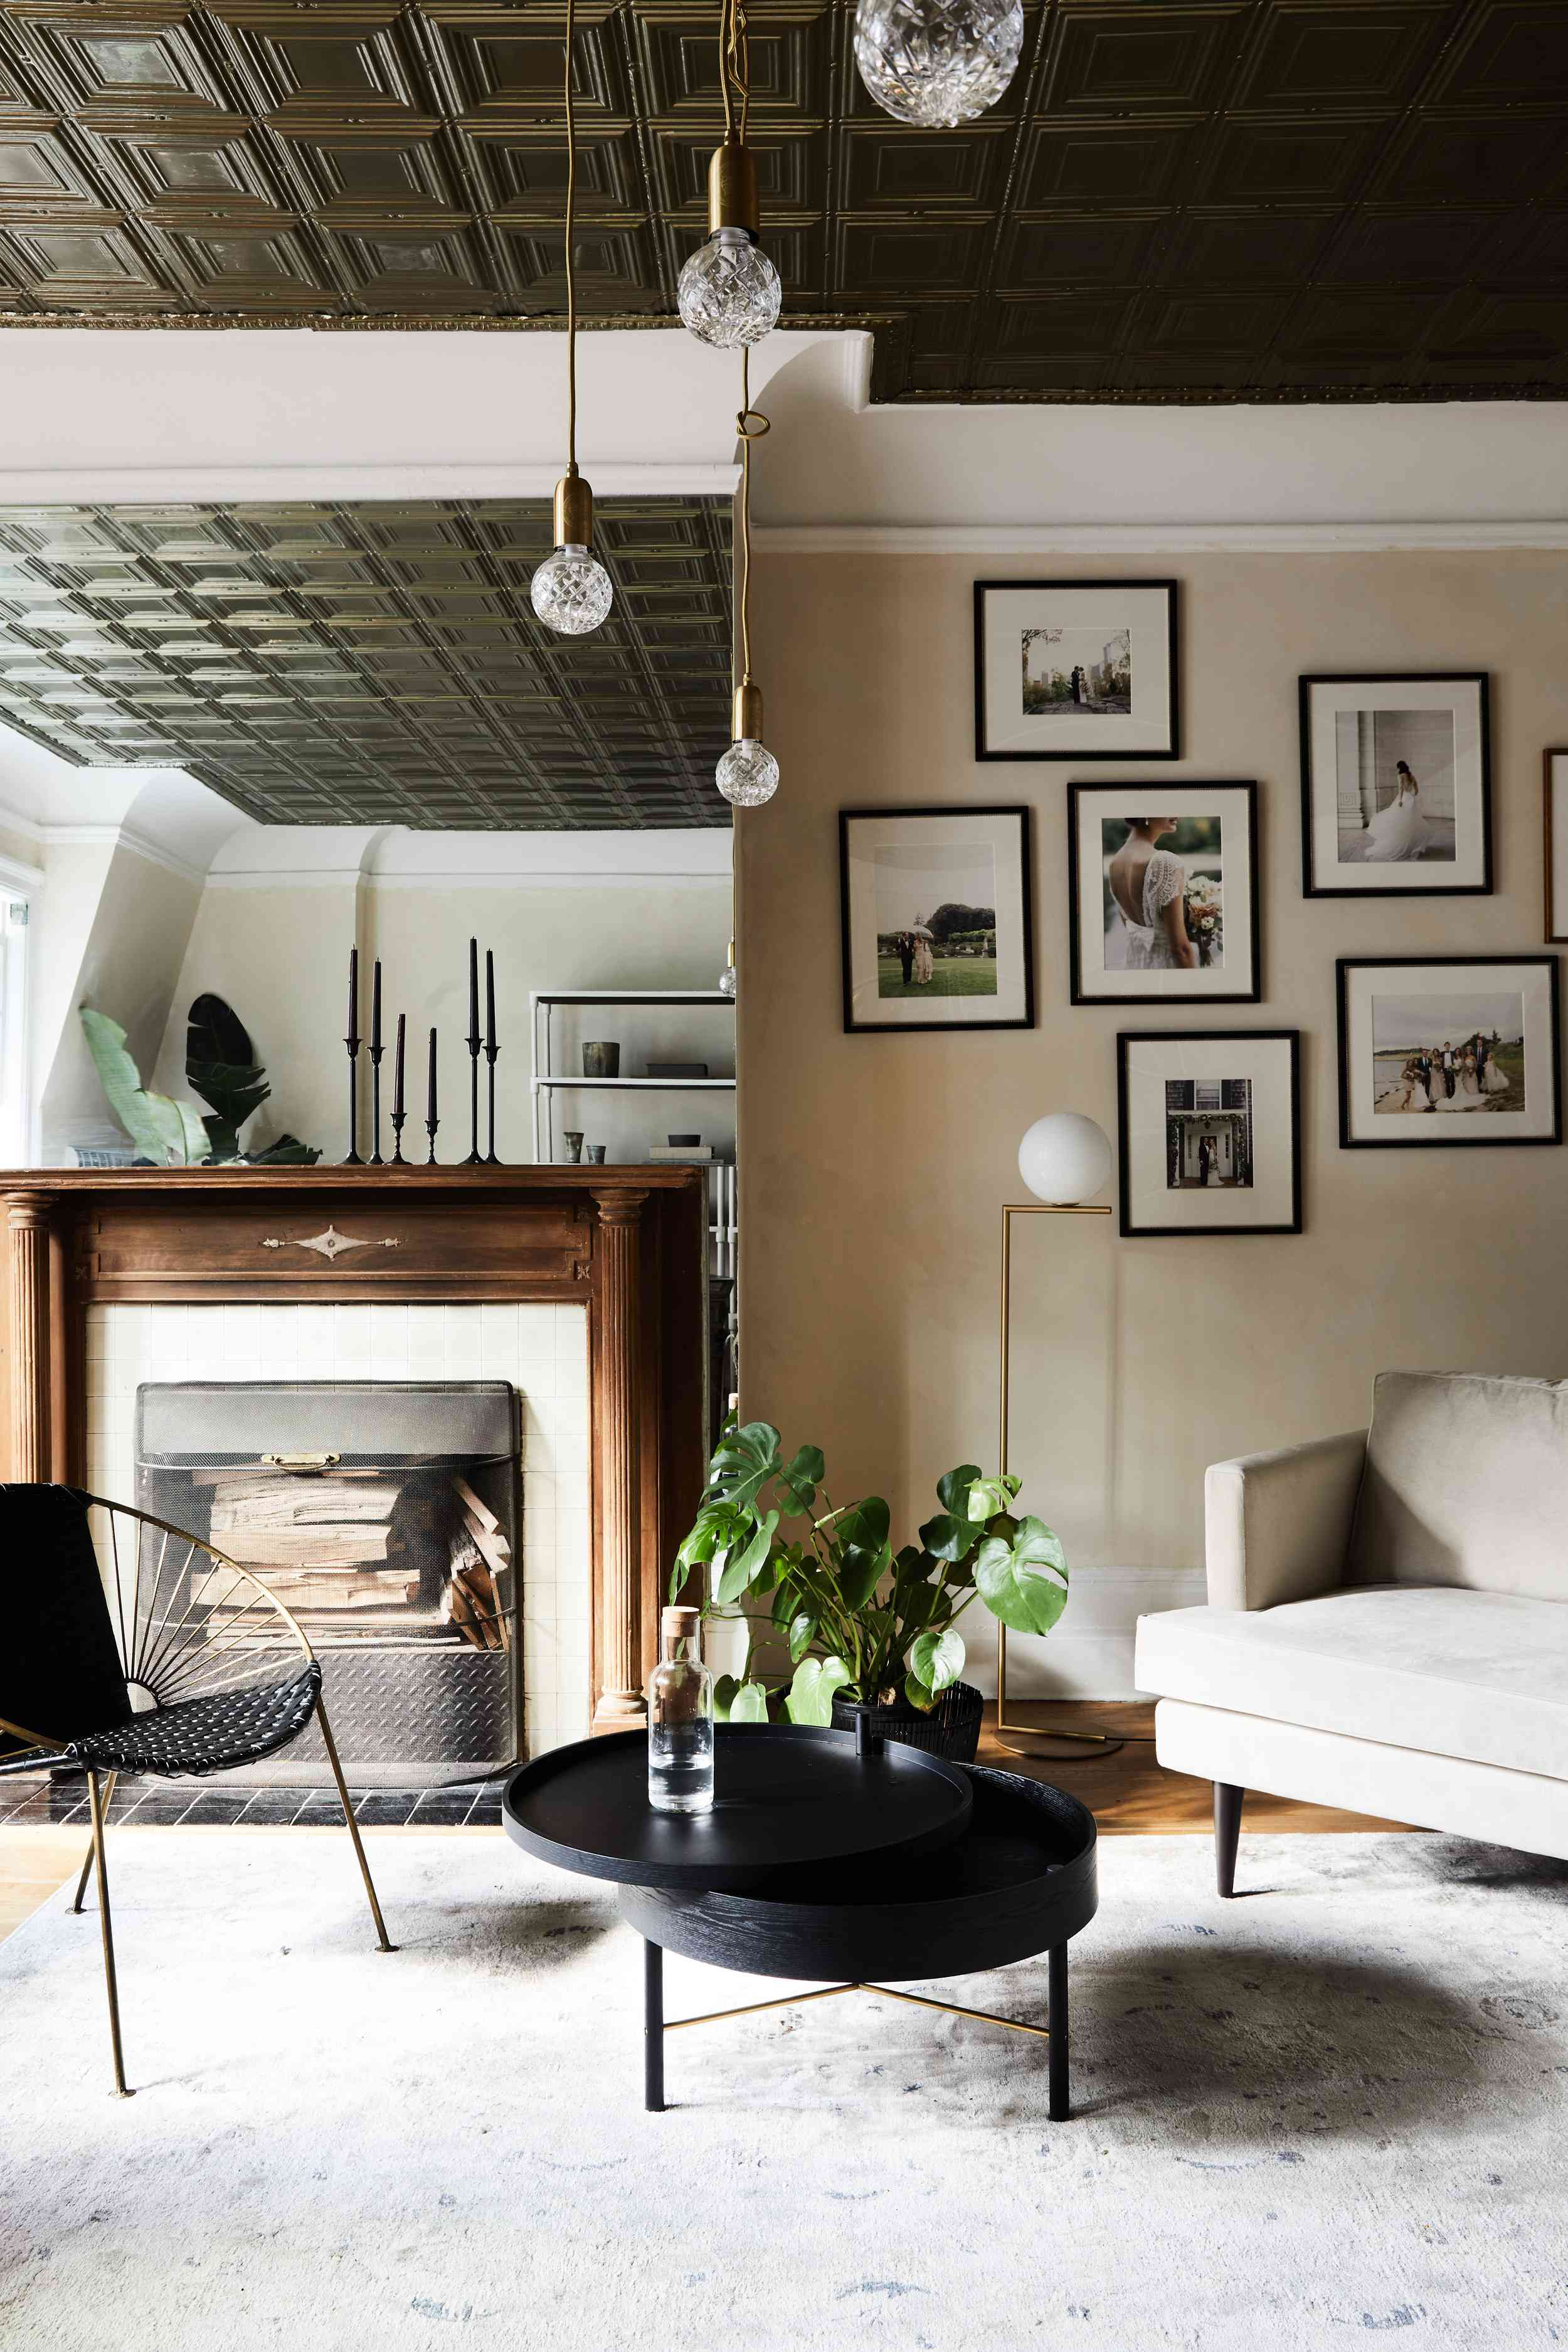 Living room with dark tin ceiling and eclectic furniture